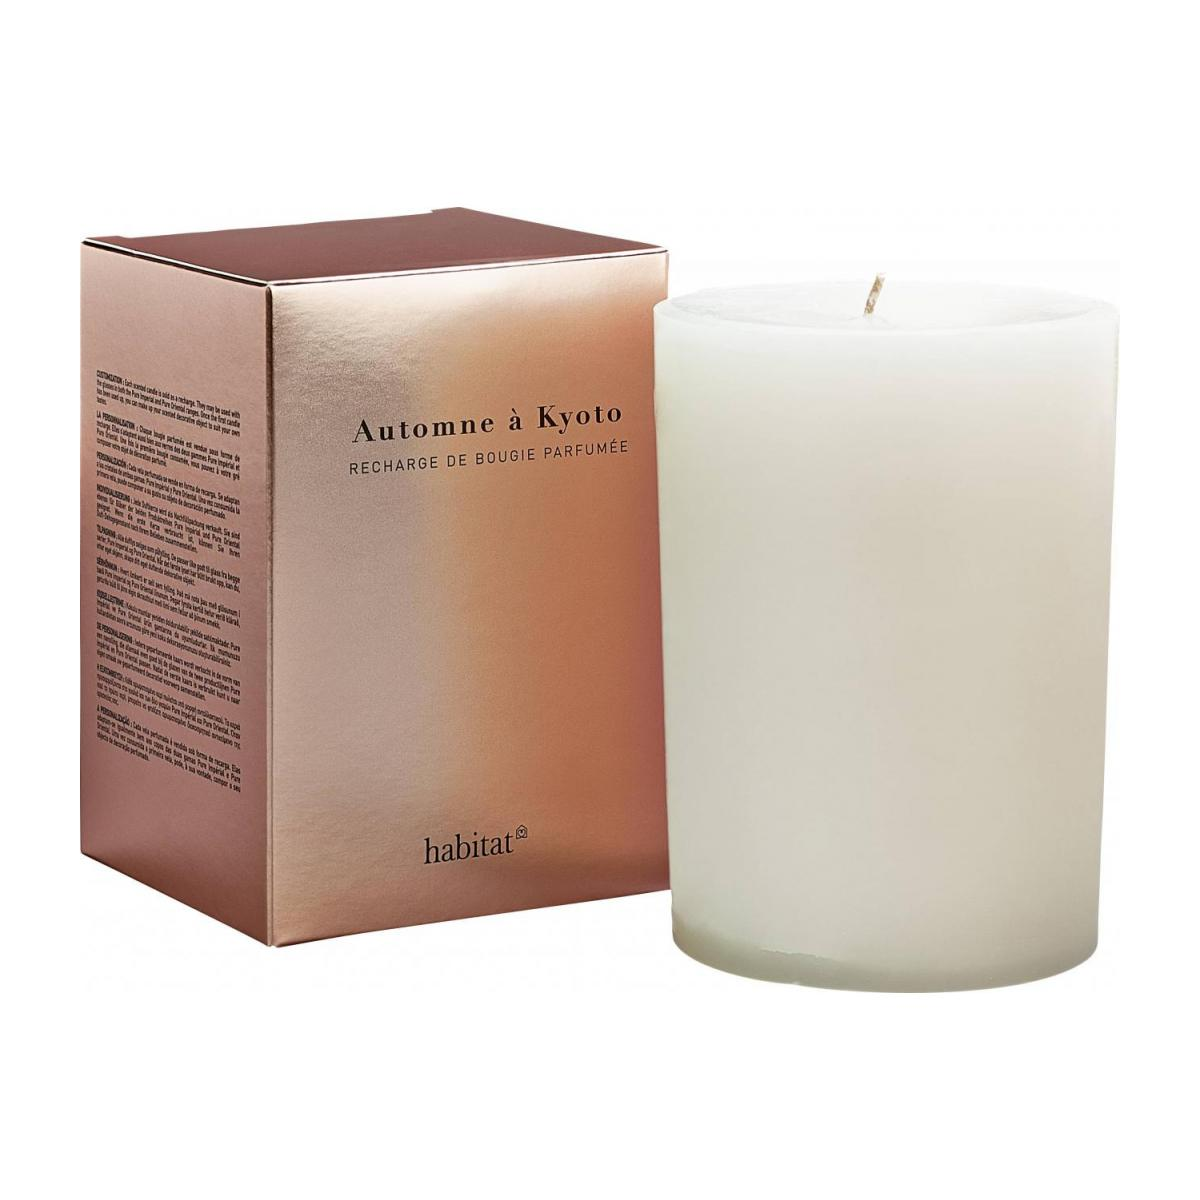 Refill for large Kyoto scented candle, 600 g n°1